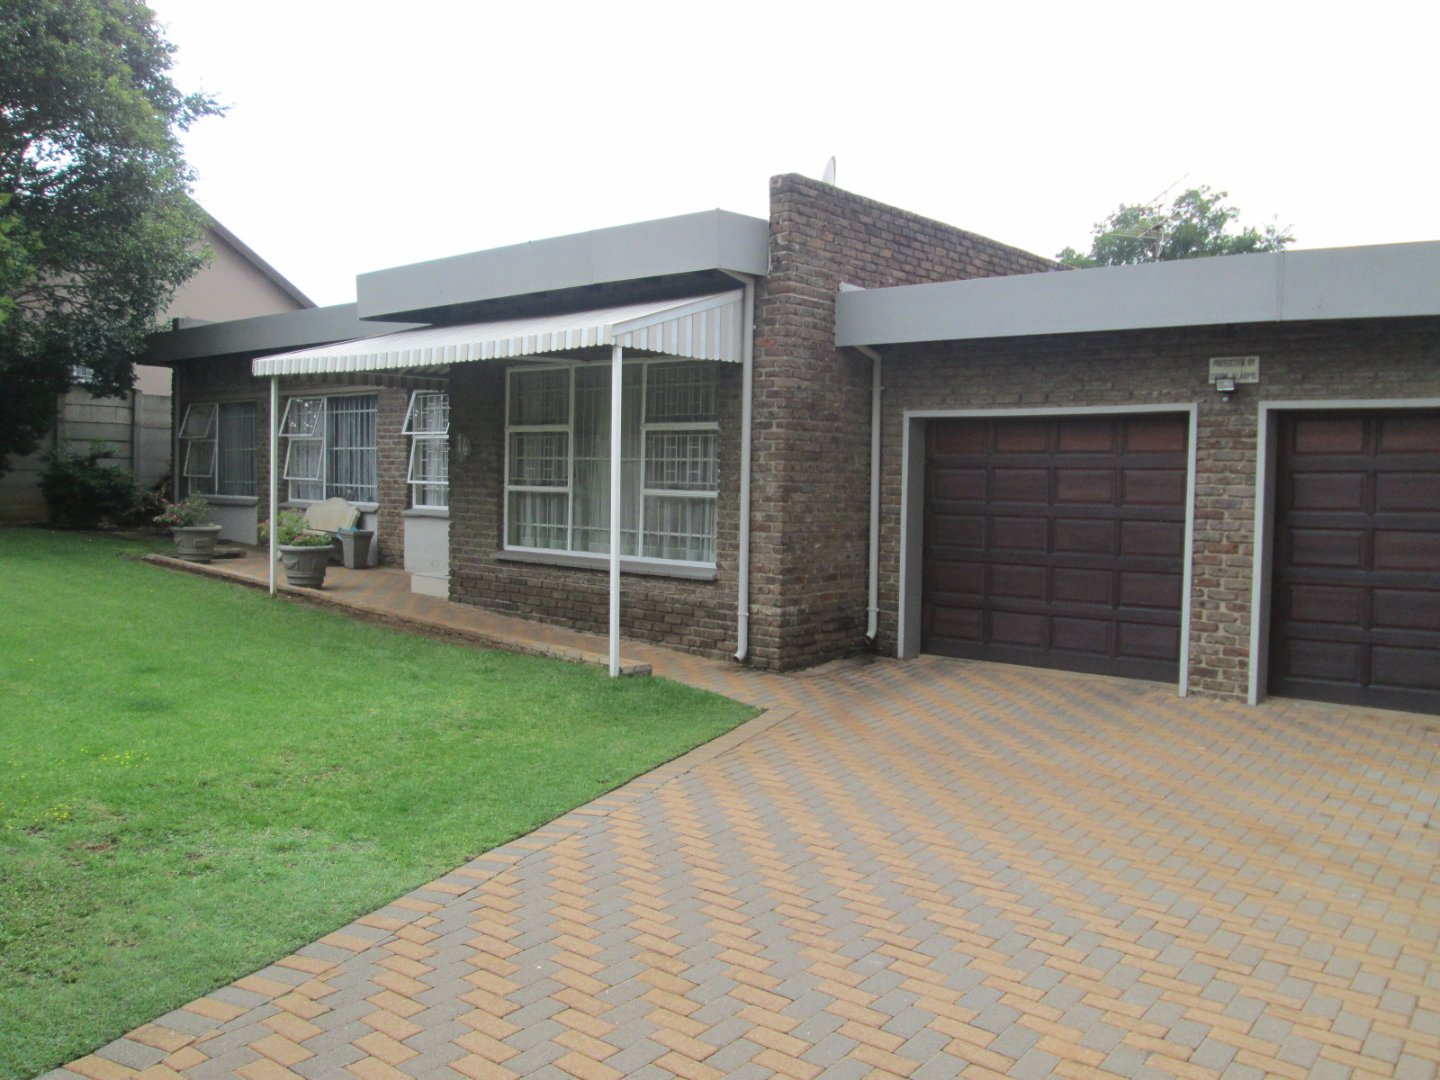 Alberton, Verwoerdpark Property  | Houses For Sale Verwoerdpark, Verwoerdpark, House 3 bedrooms property for sale Price:1,630,000